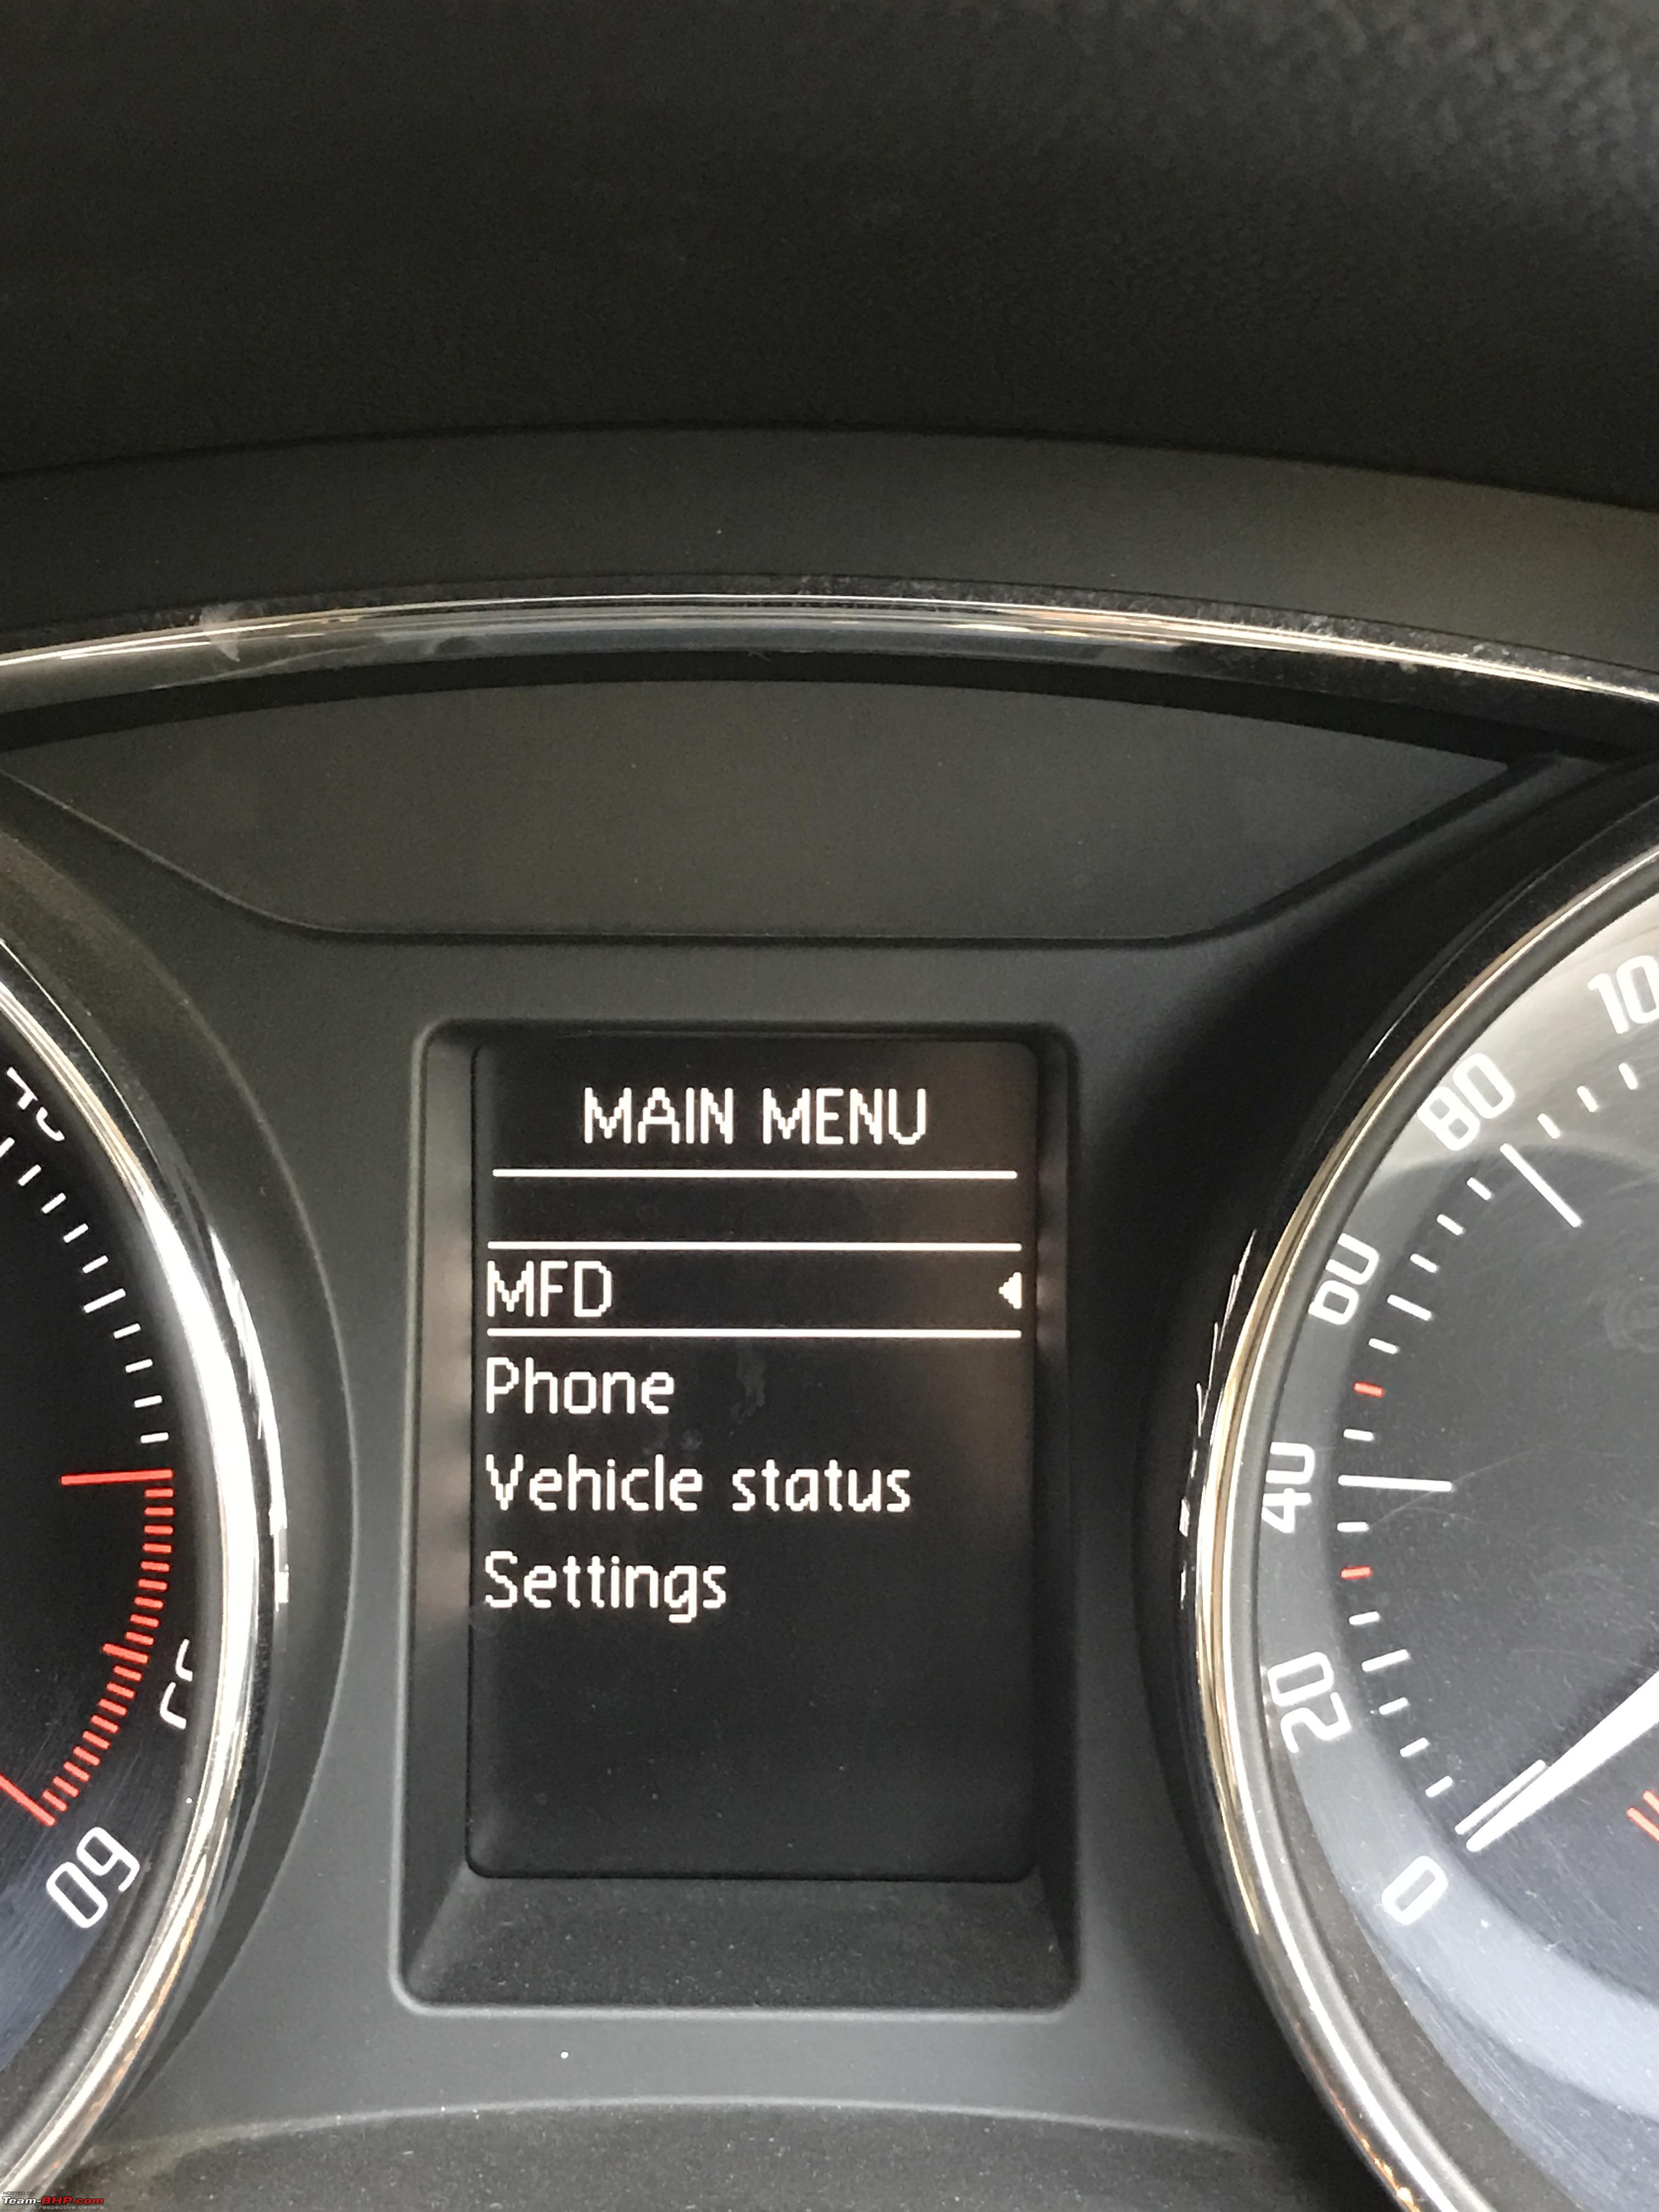 Skoda Superb: Swapped the stock Bolero system with an RCD330